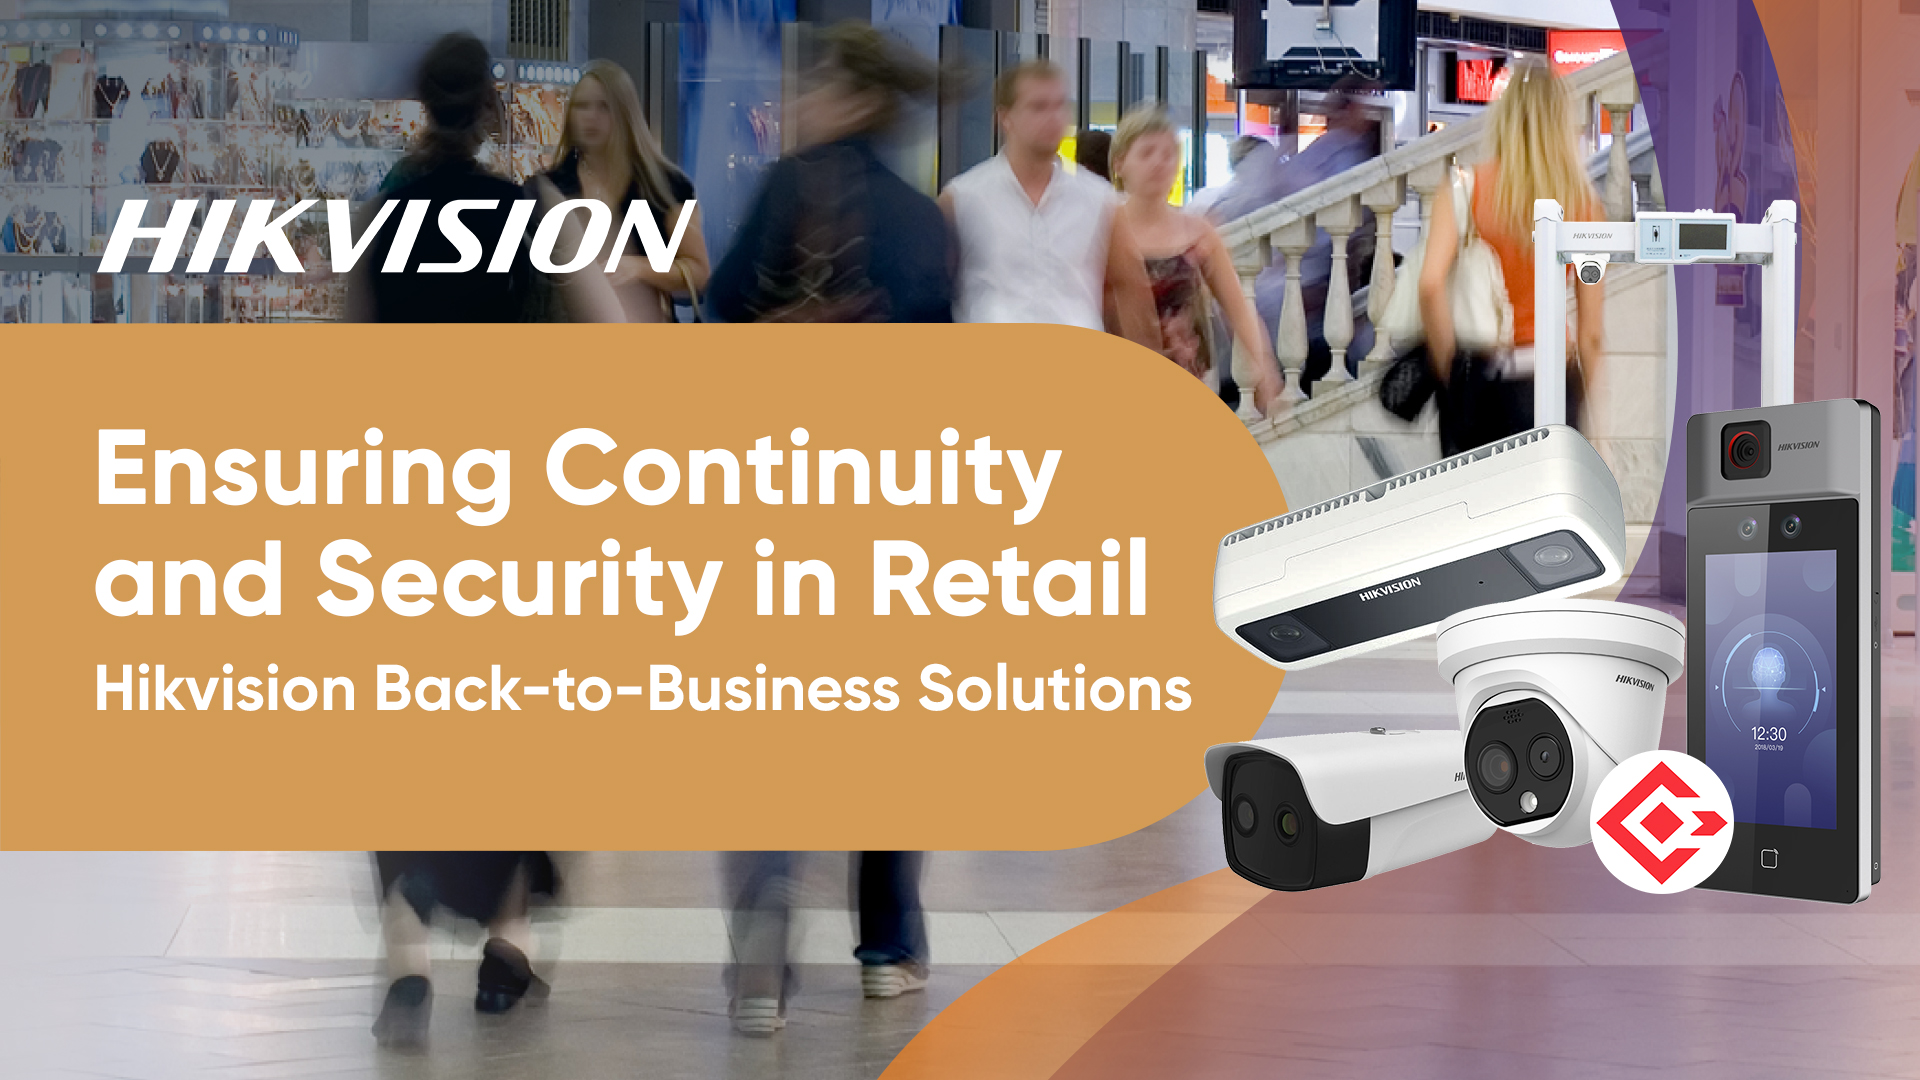 Hikvision Back-to-Business Solutions